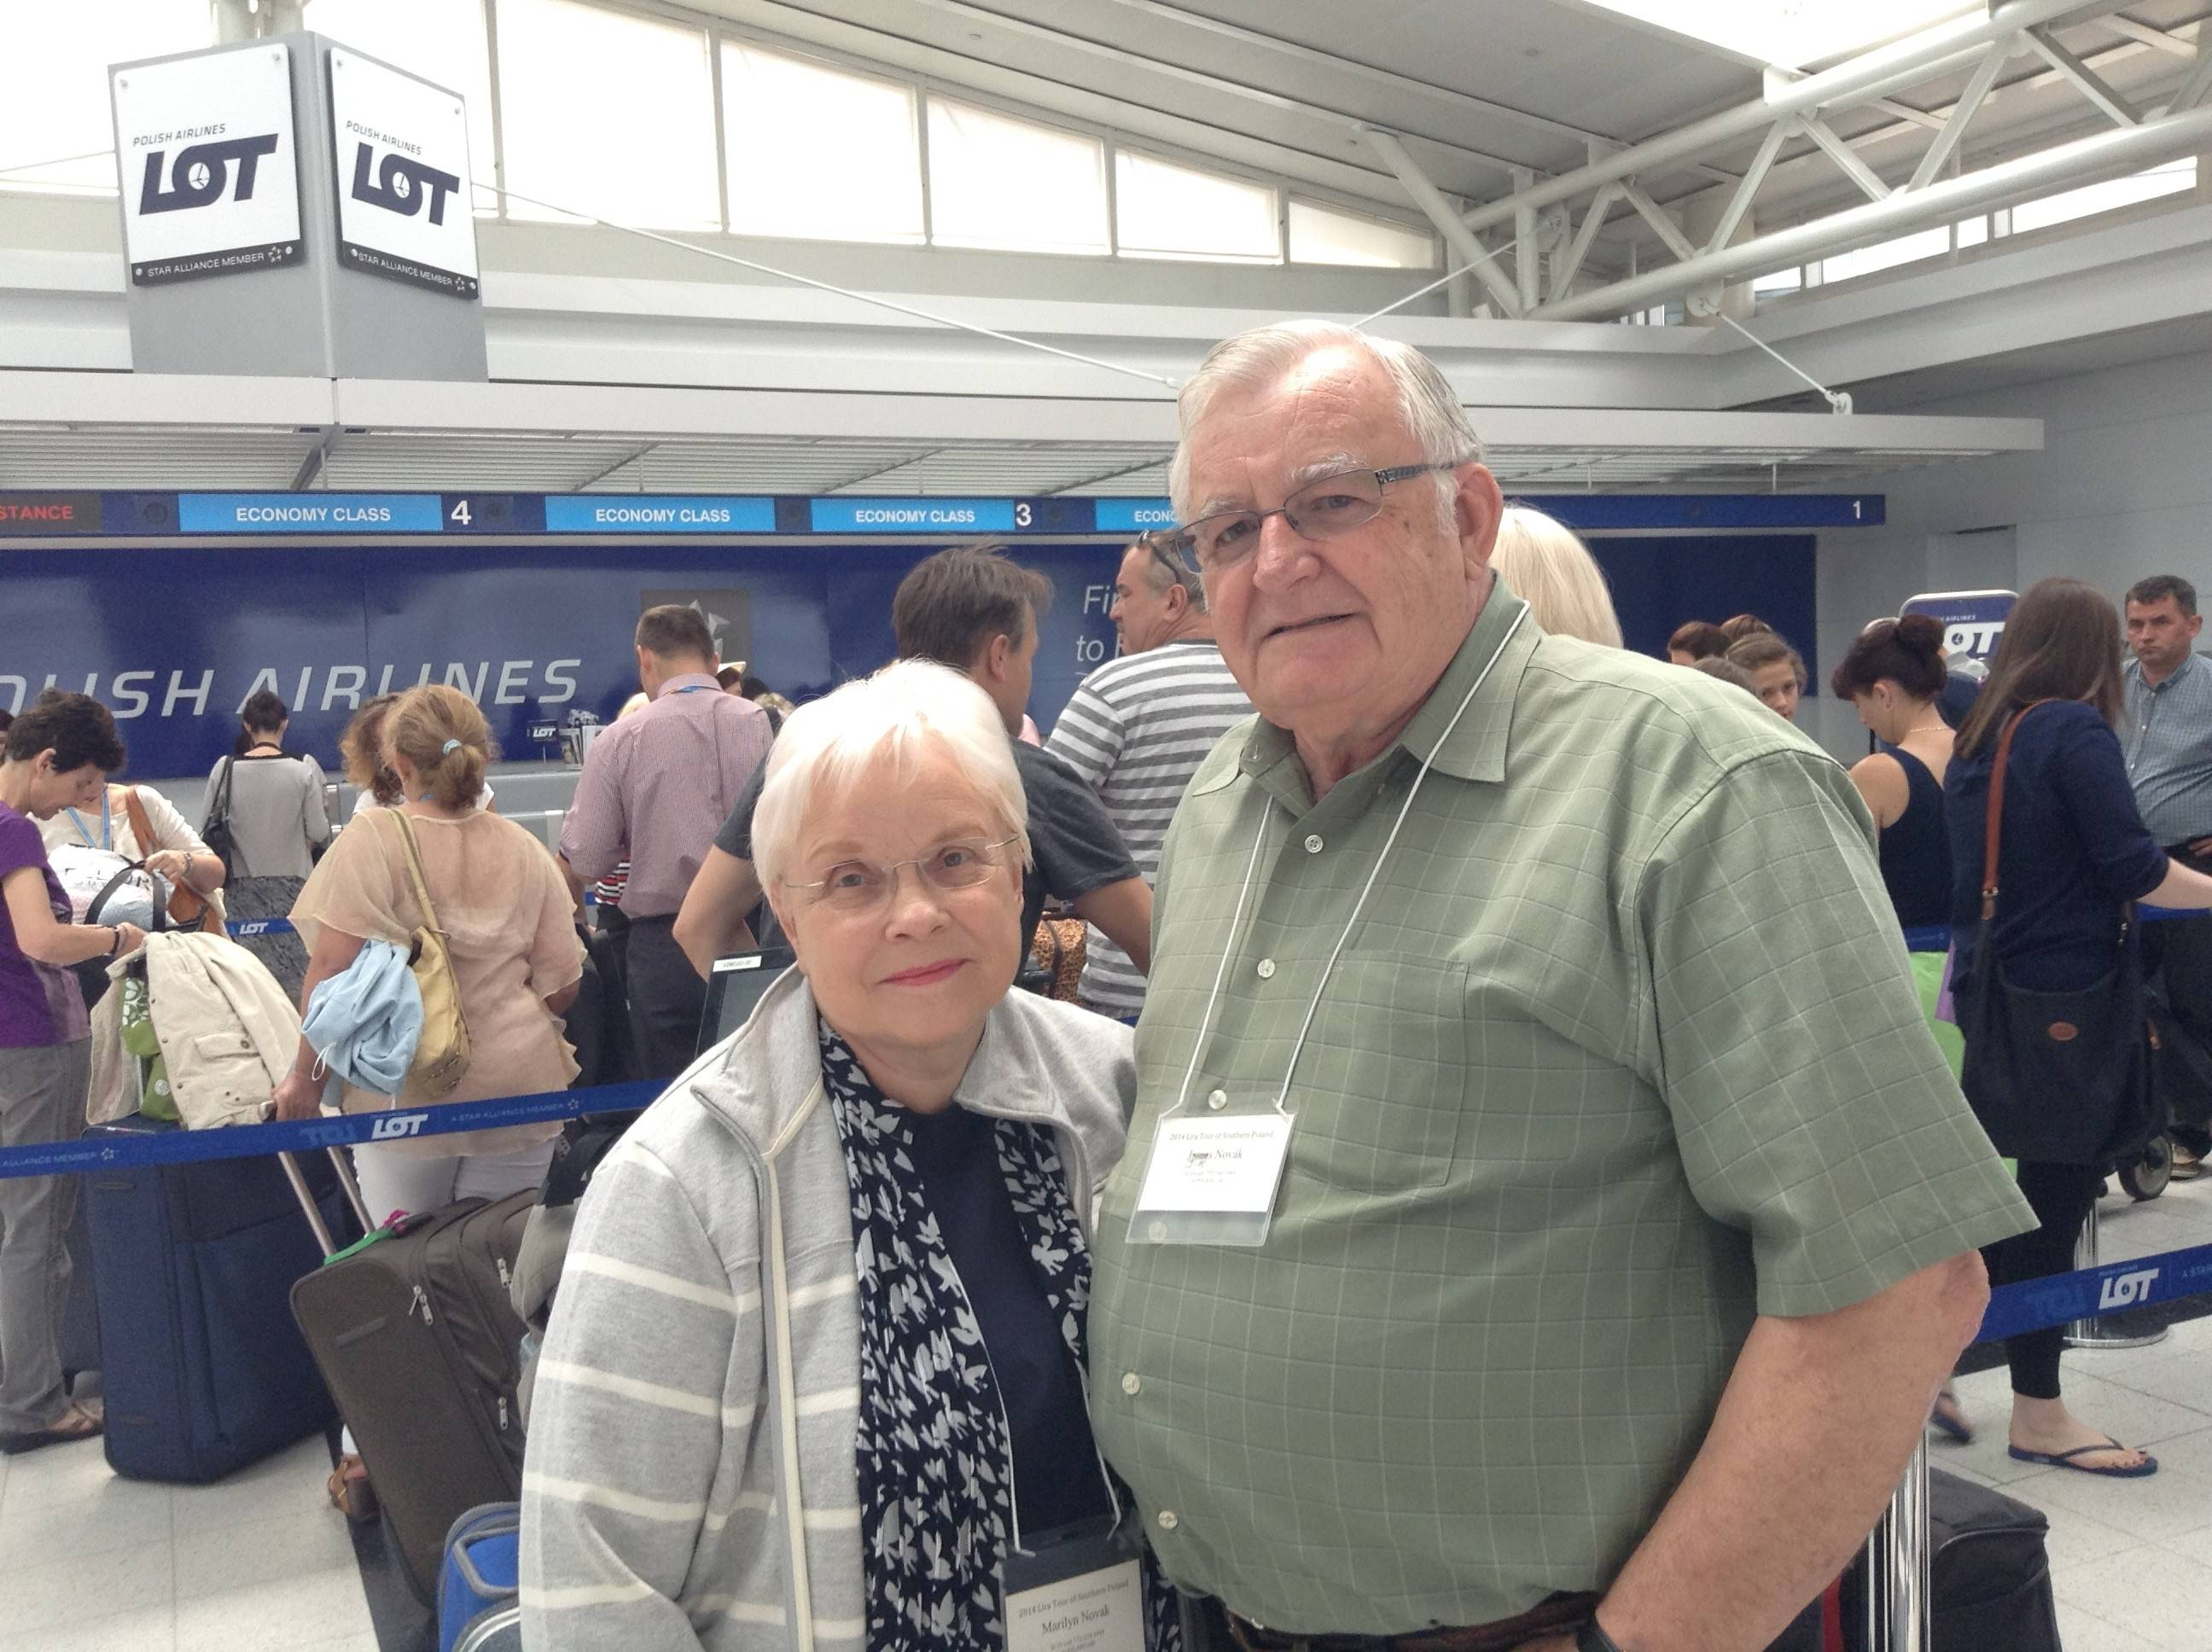 Jim and Marilyn Novak, formerly of Arlington Heights, called the crash of a Malaysia Airlines jetliner troubling but said they were not fearful about flying to Poland Thursday.